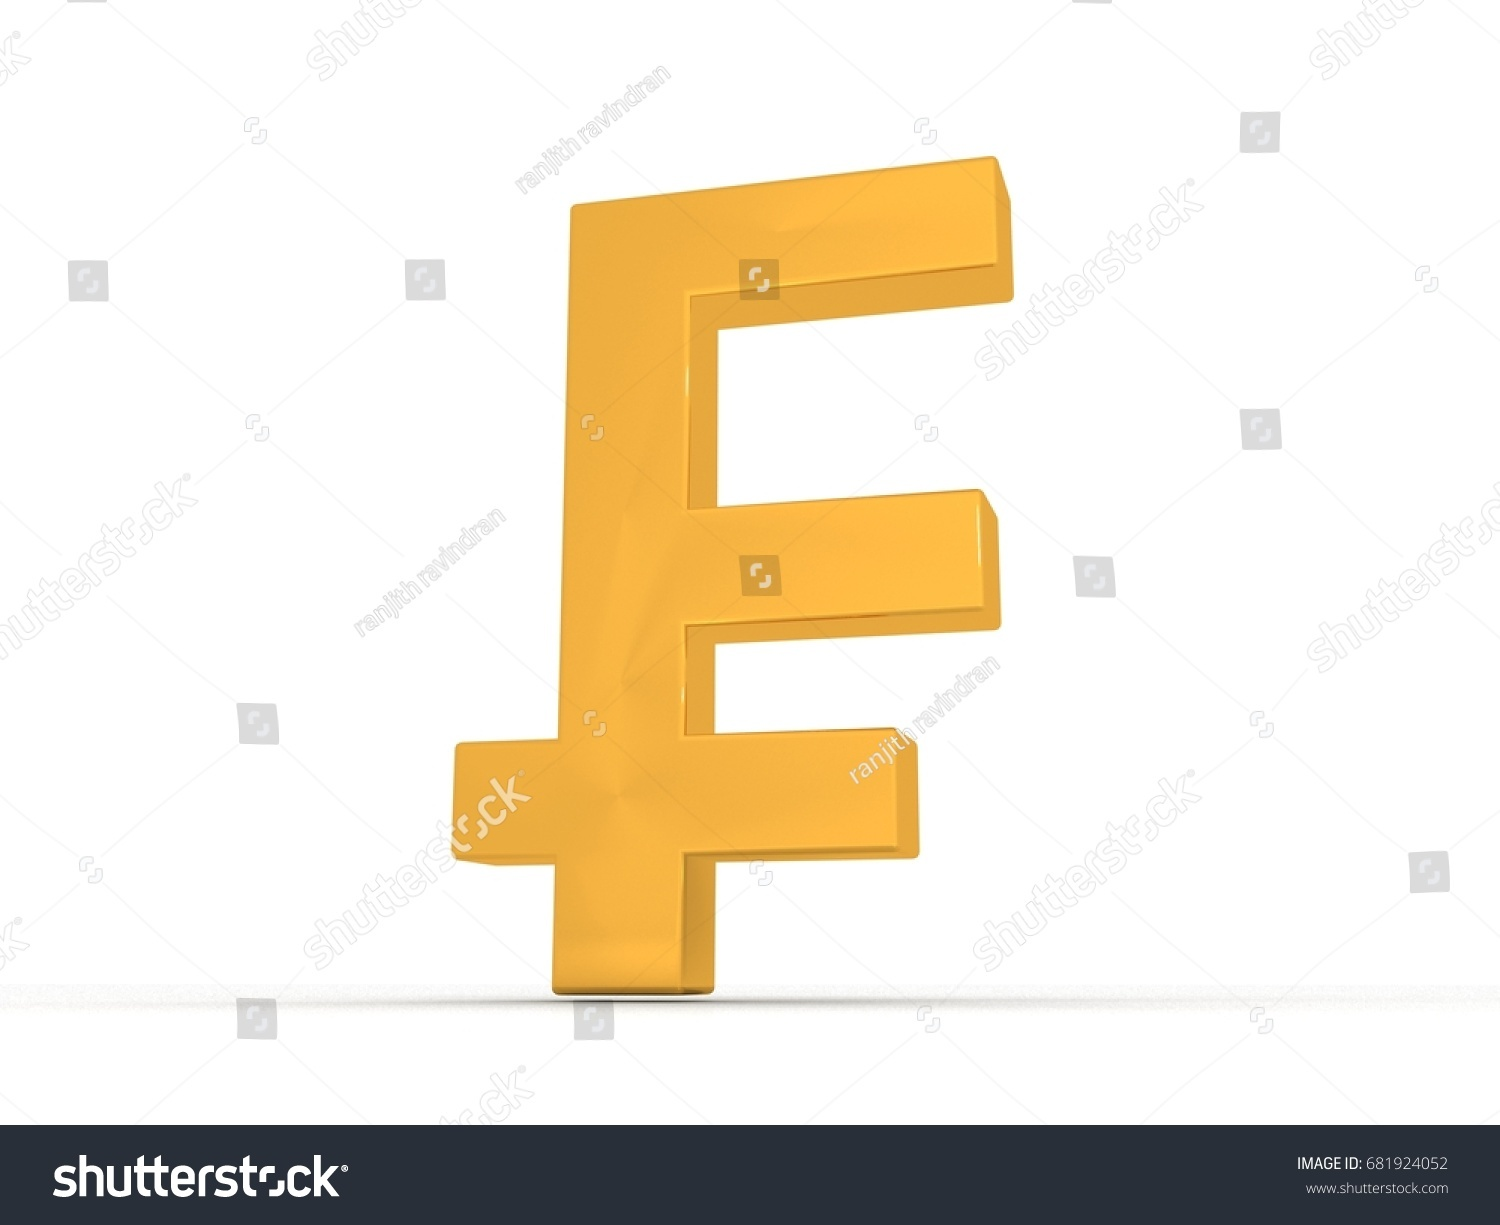 3d rendering swiss franc symbol stock illustration 681924052 3d rendering swiss franc symbol buycottarizona Images